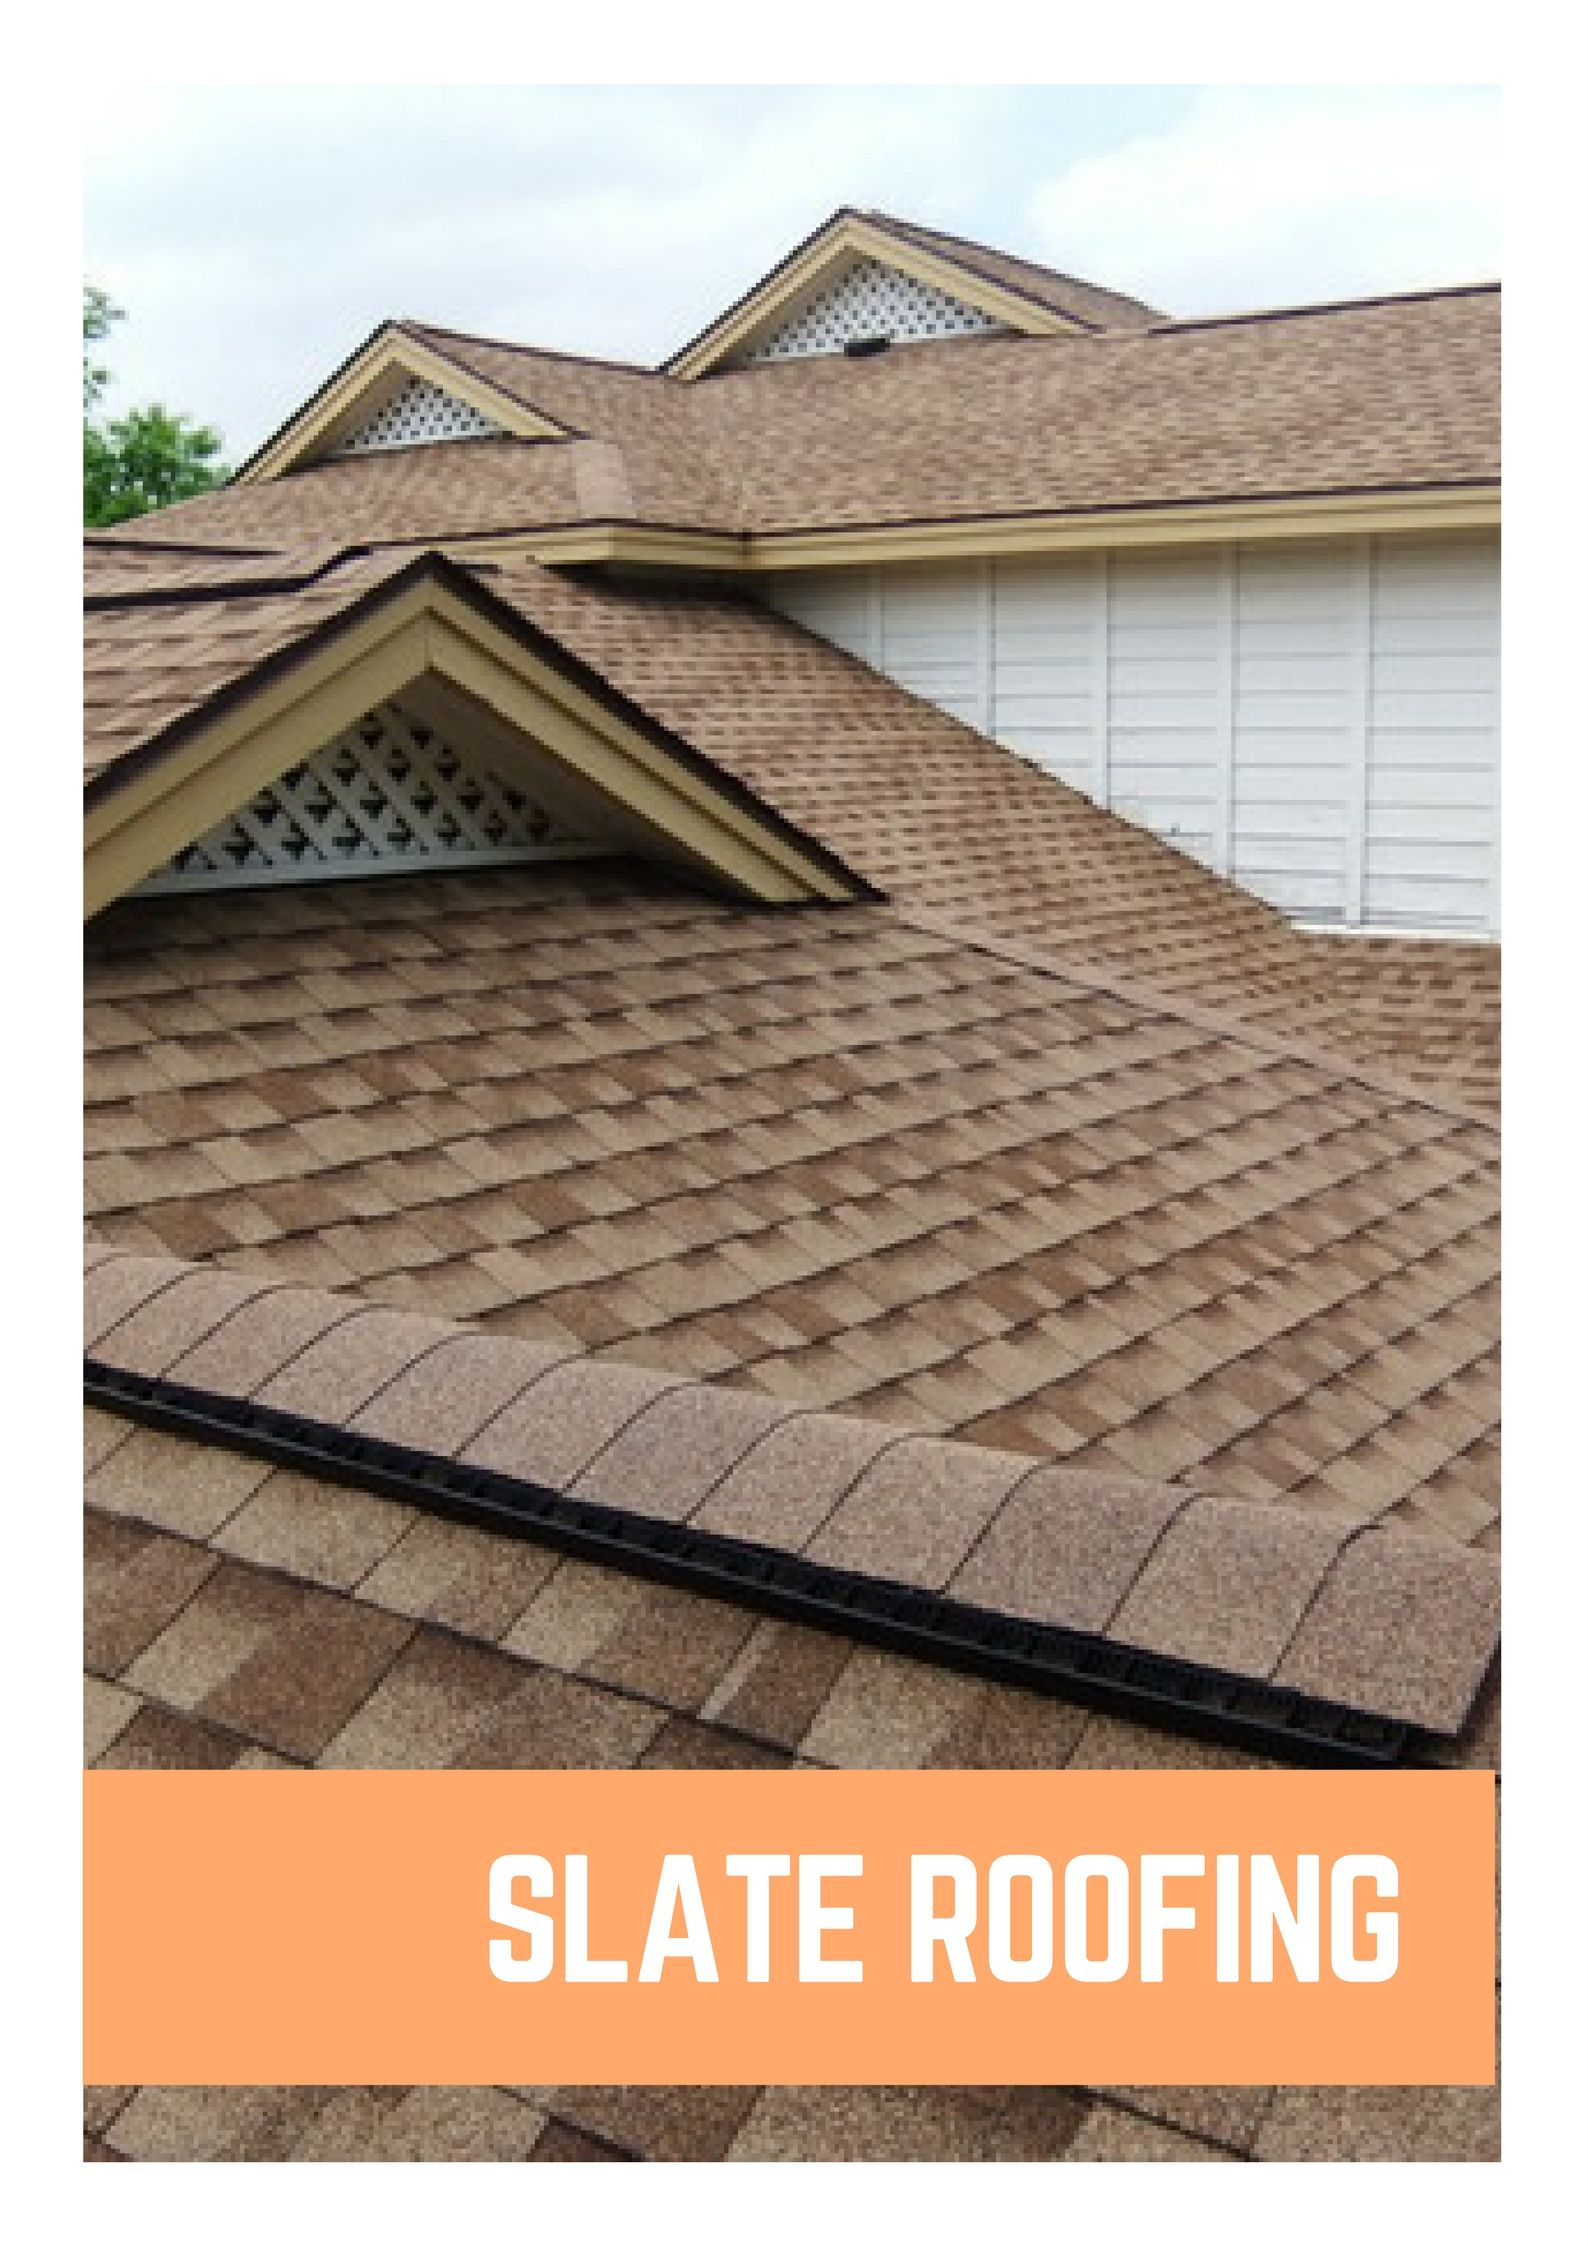 Slate Roofing Tiles Are Available In All All Colors And Spectrum Slate Roof Slate Roof Tiles Roofing